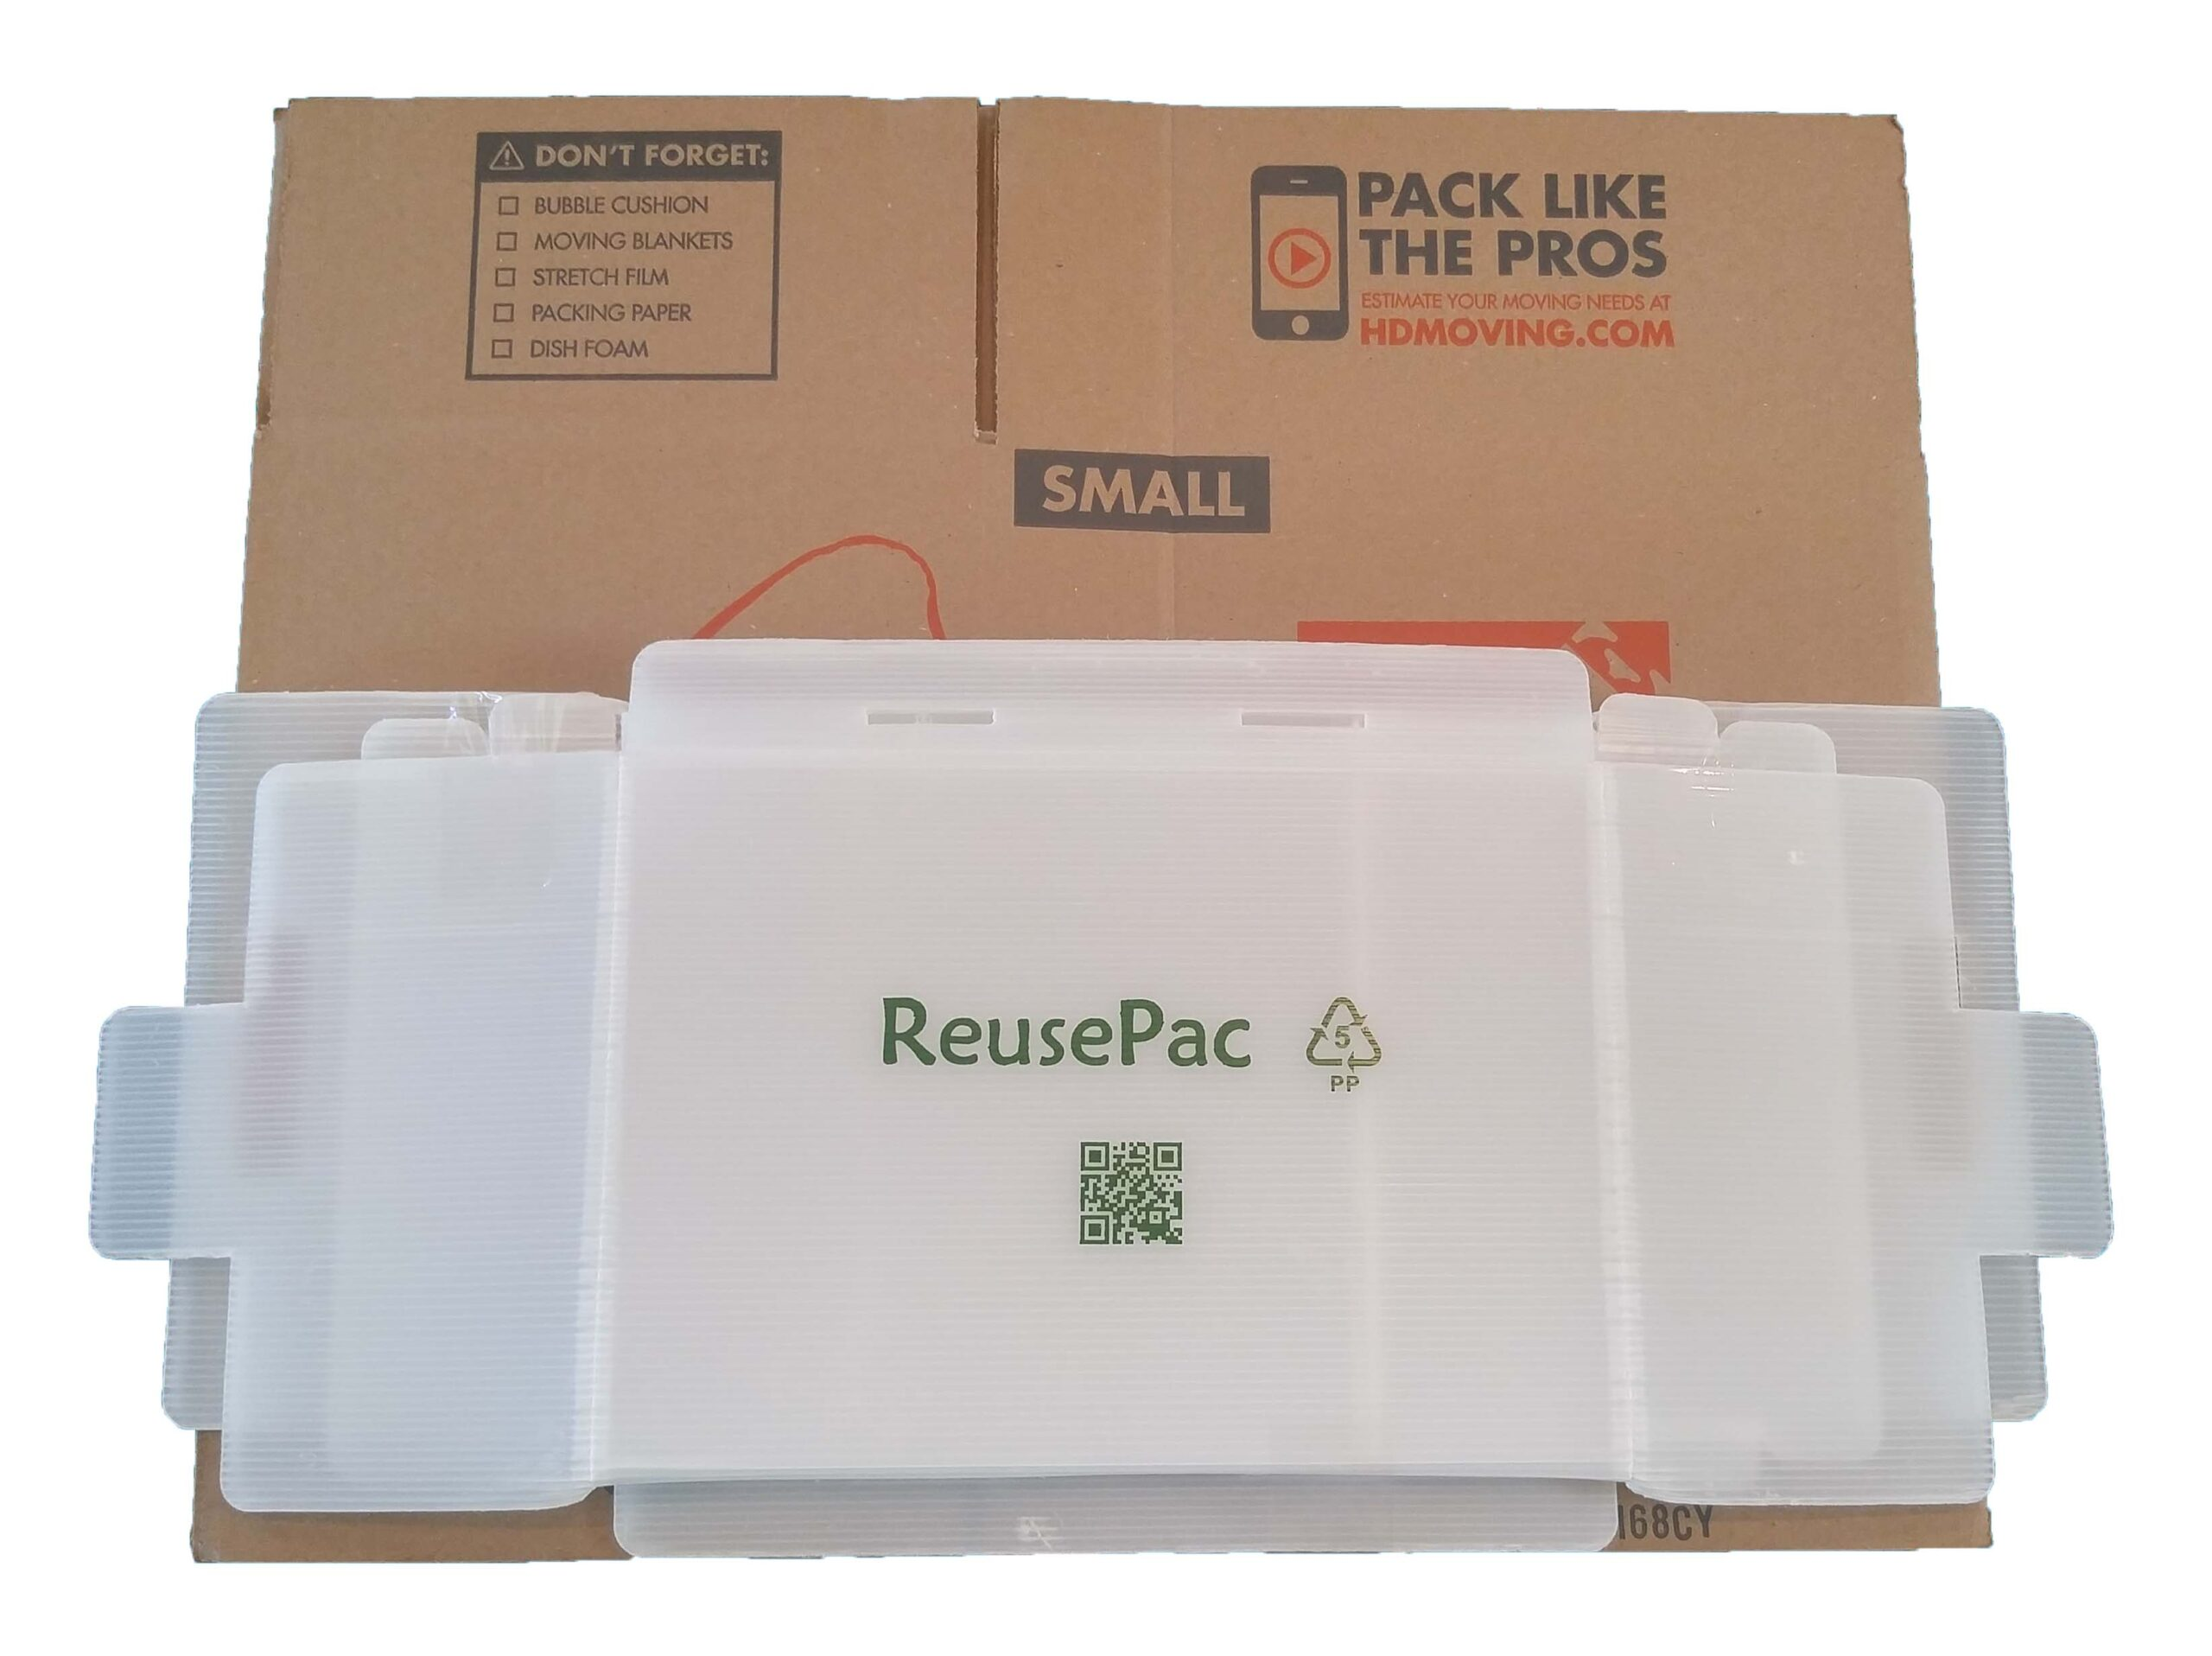 Reusable box collapse to small size